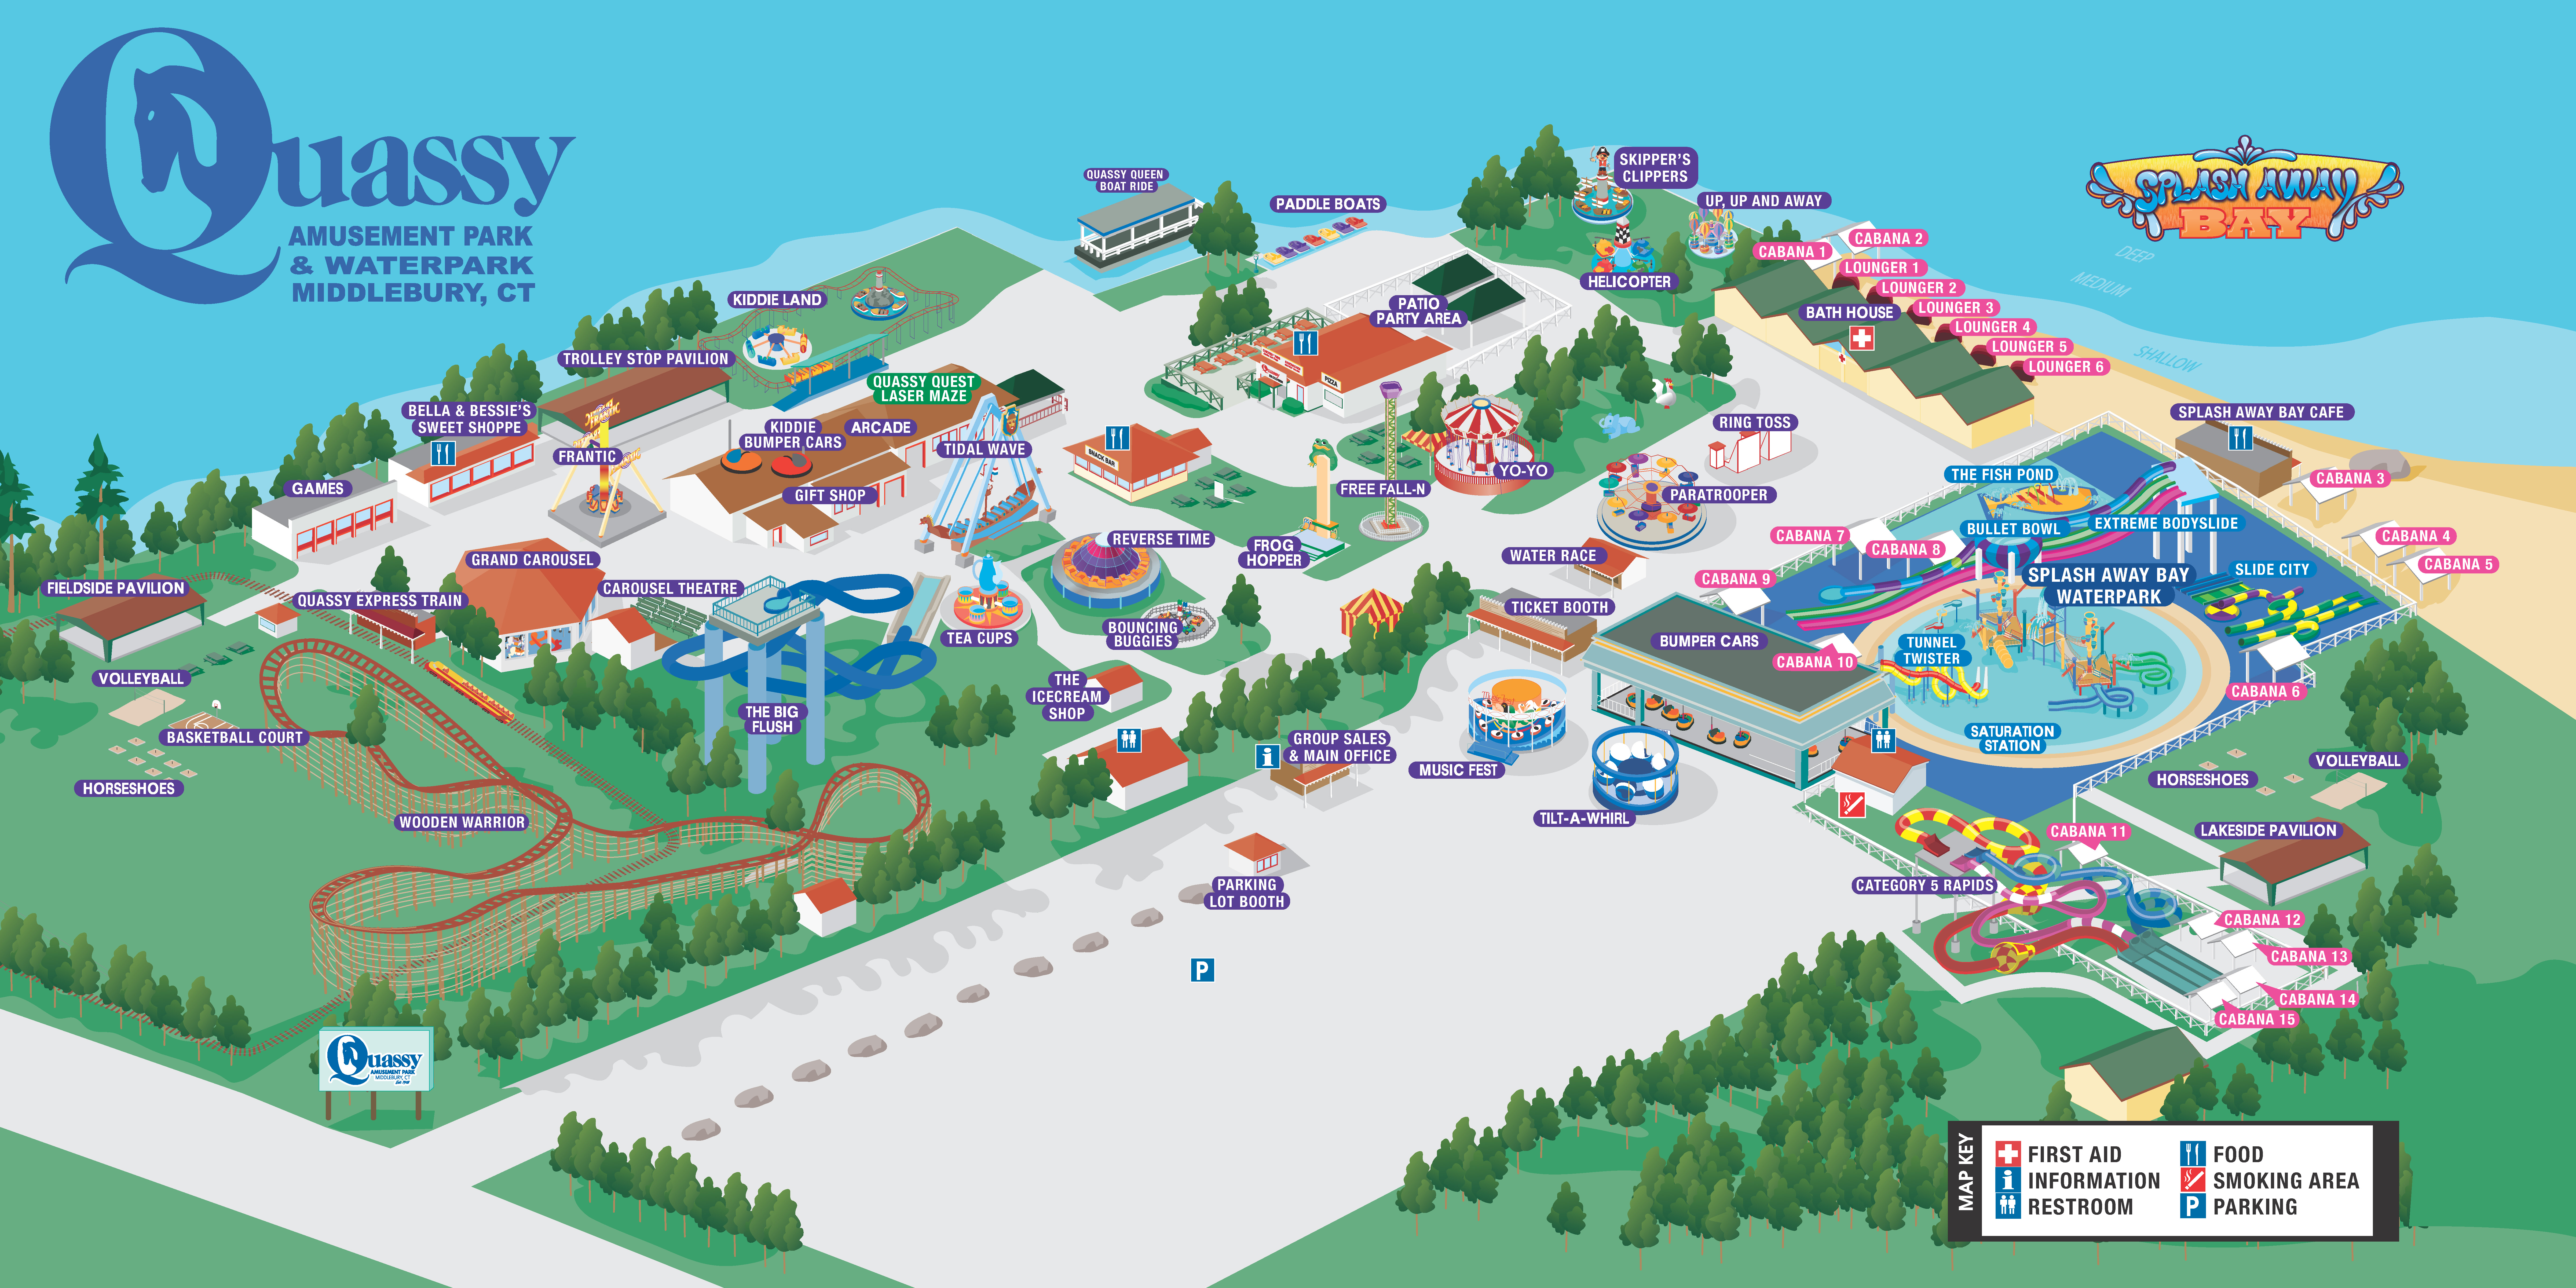 Map of Quassy Amusement Park